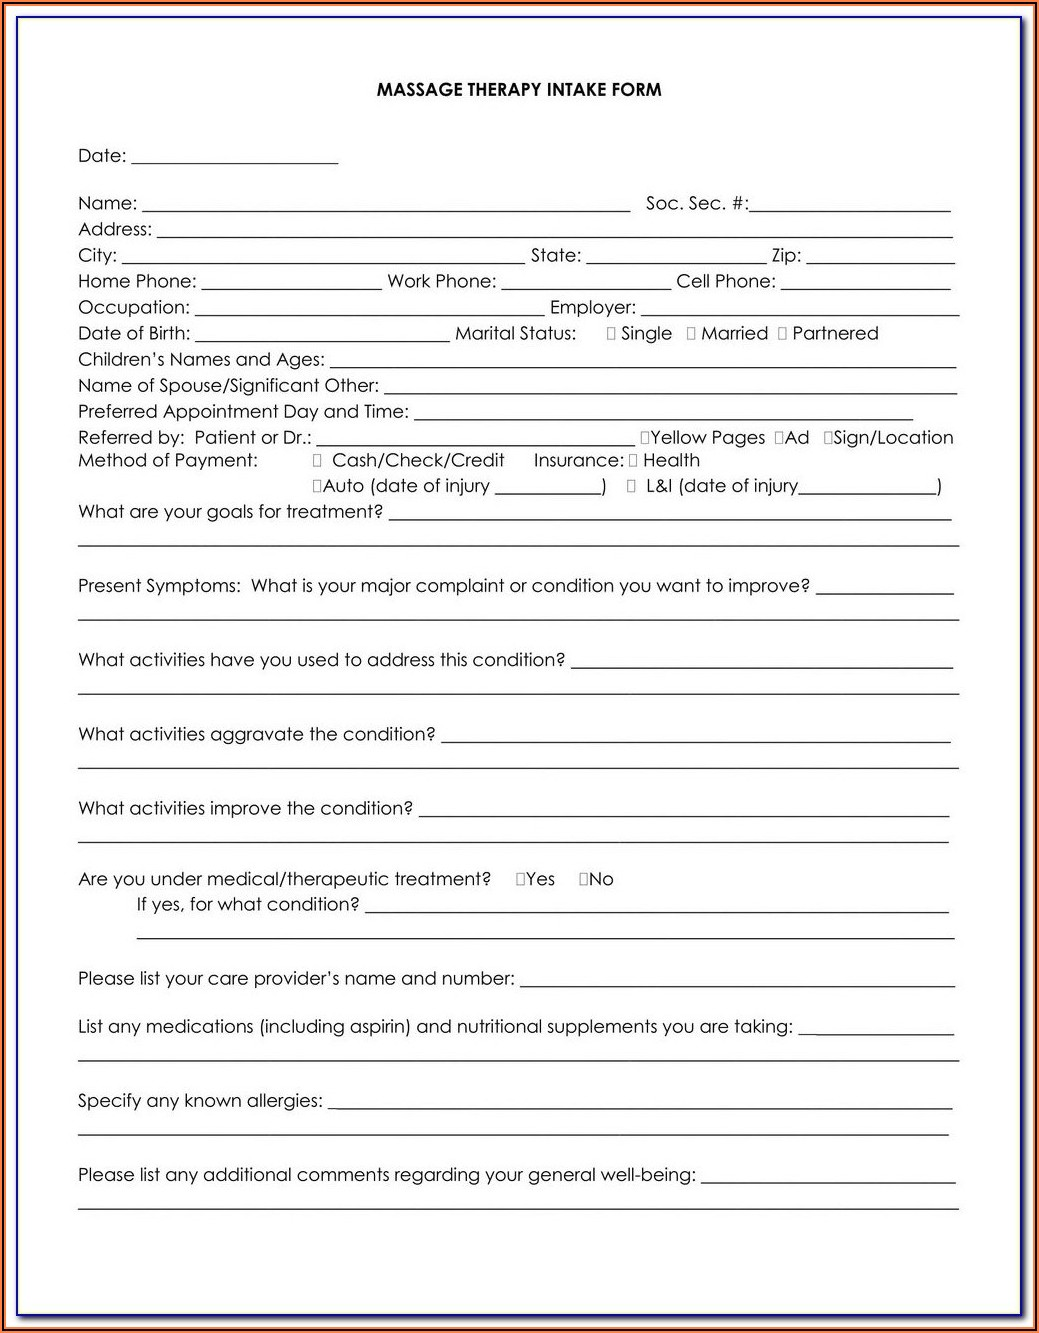 Massage Therapy Intake Forms Abmp